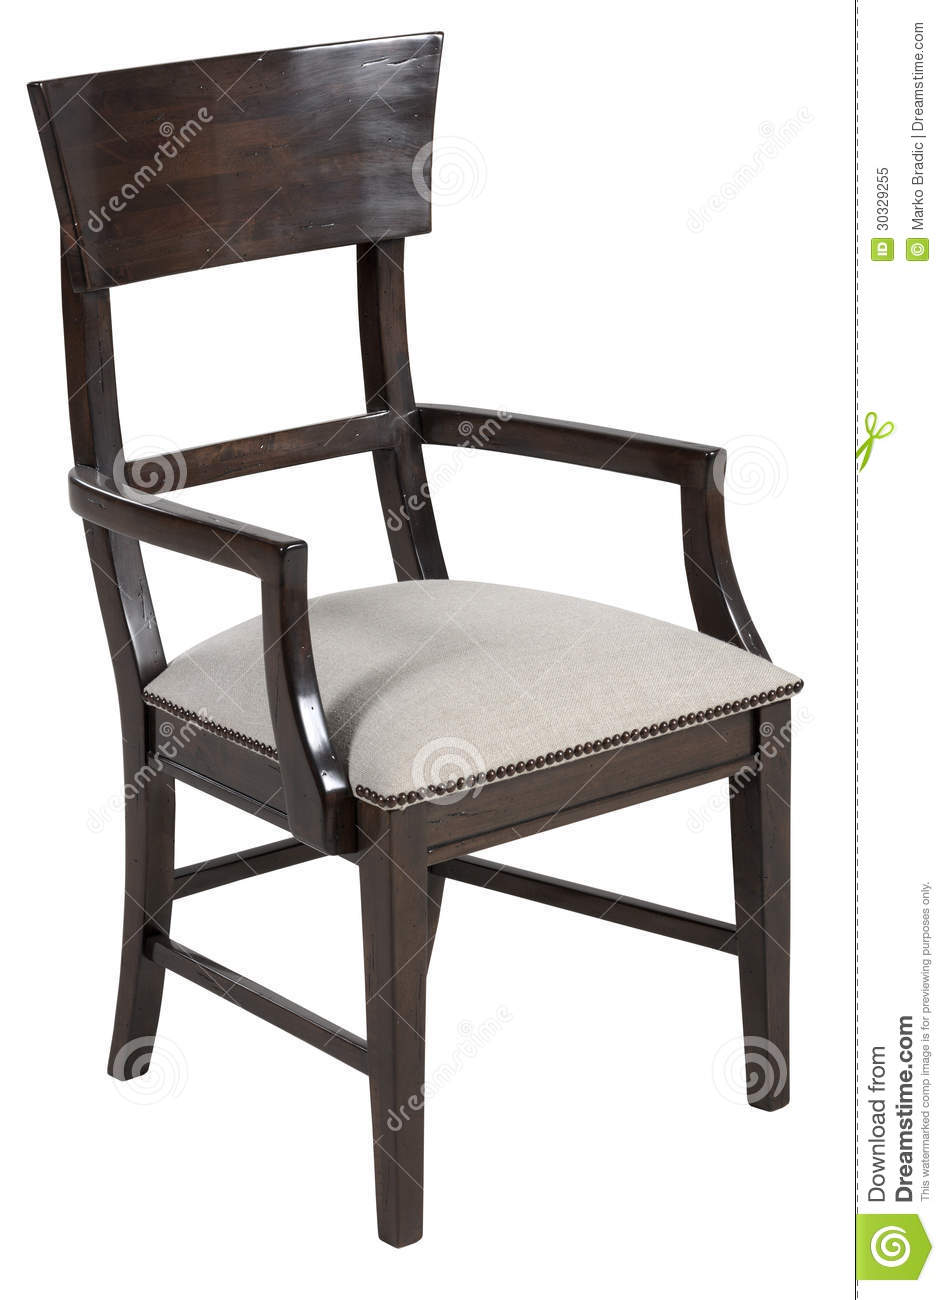 Elegant dining chair royalty free stock photo image for Elegant upholstered dining chairs